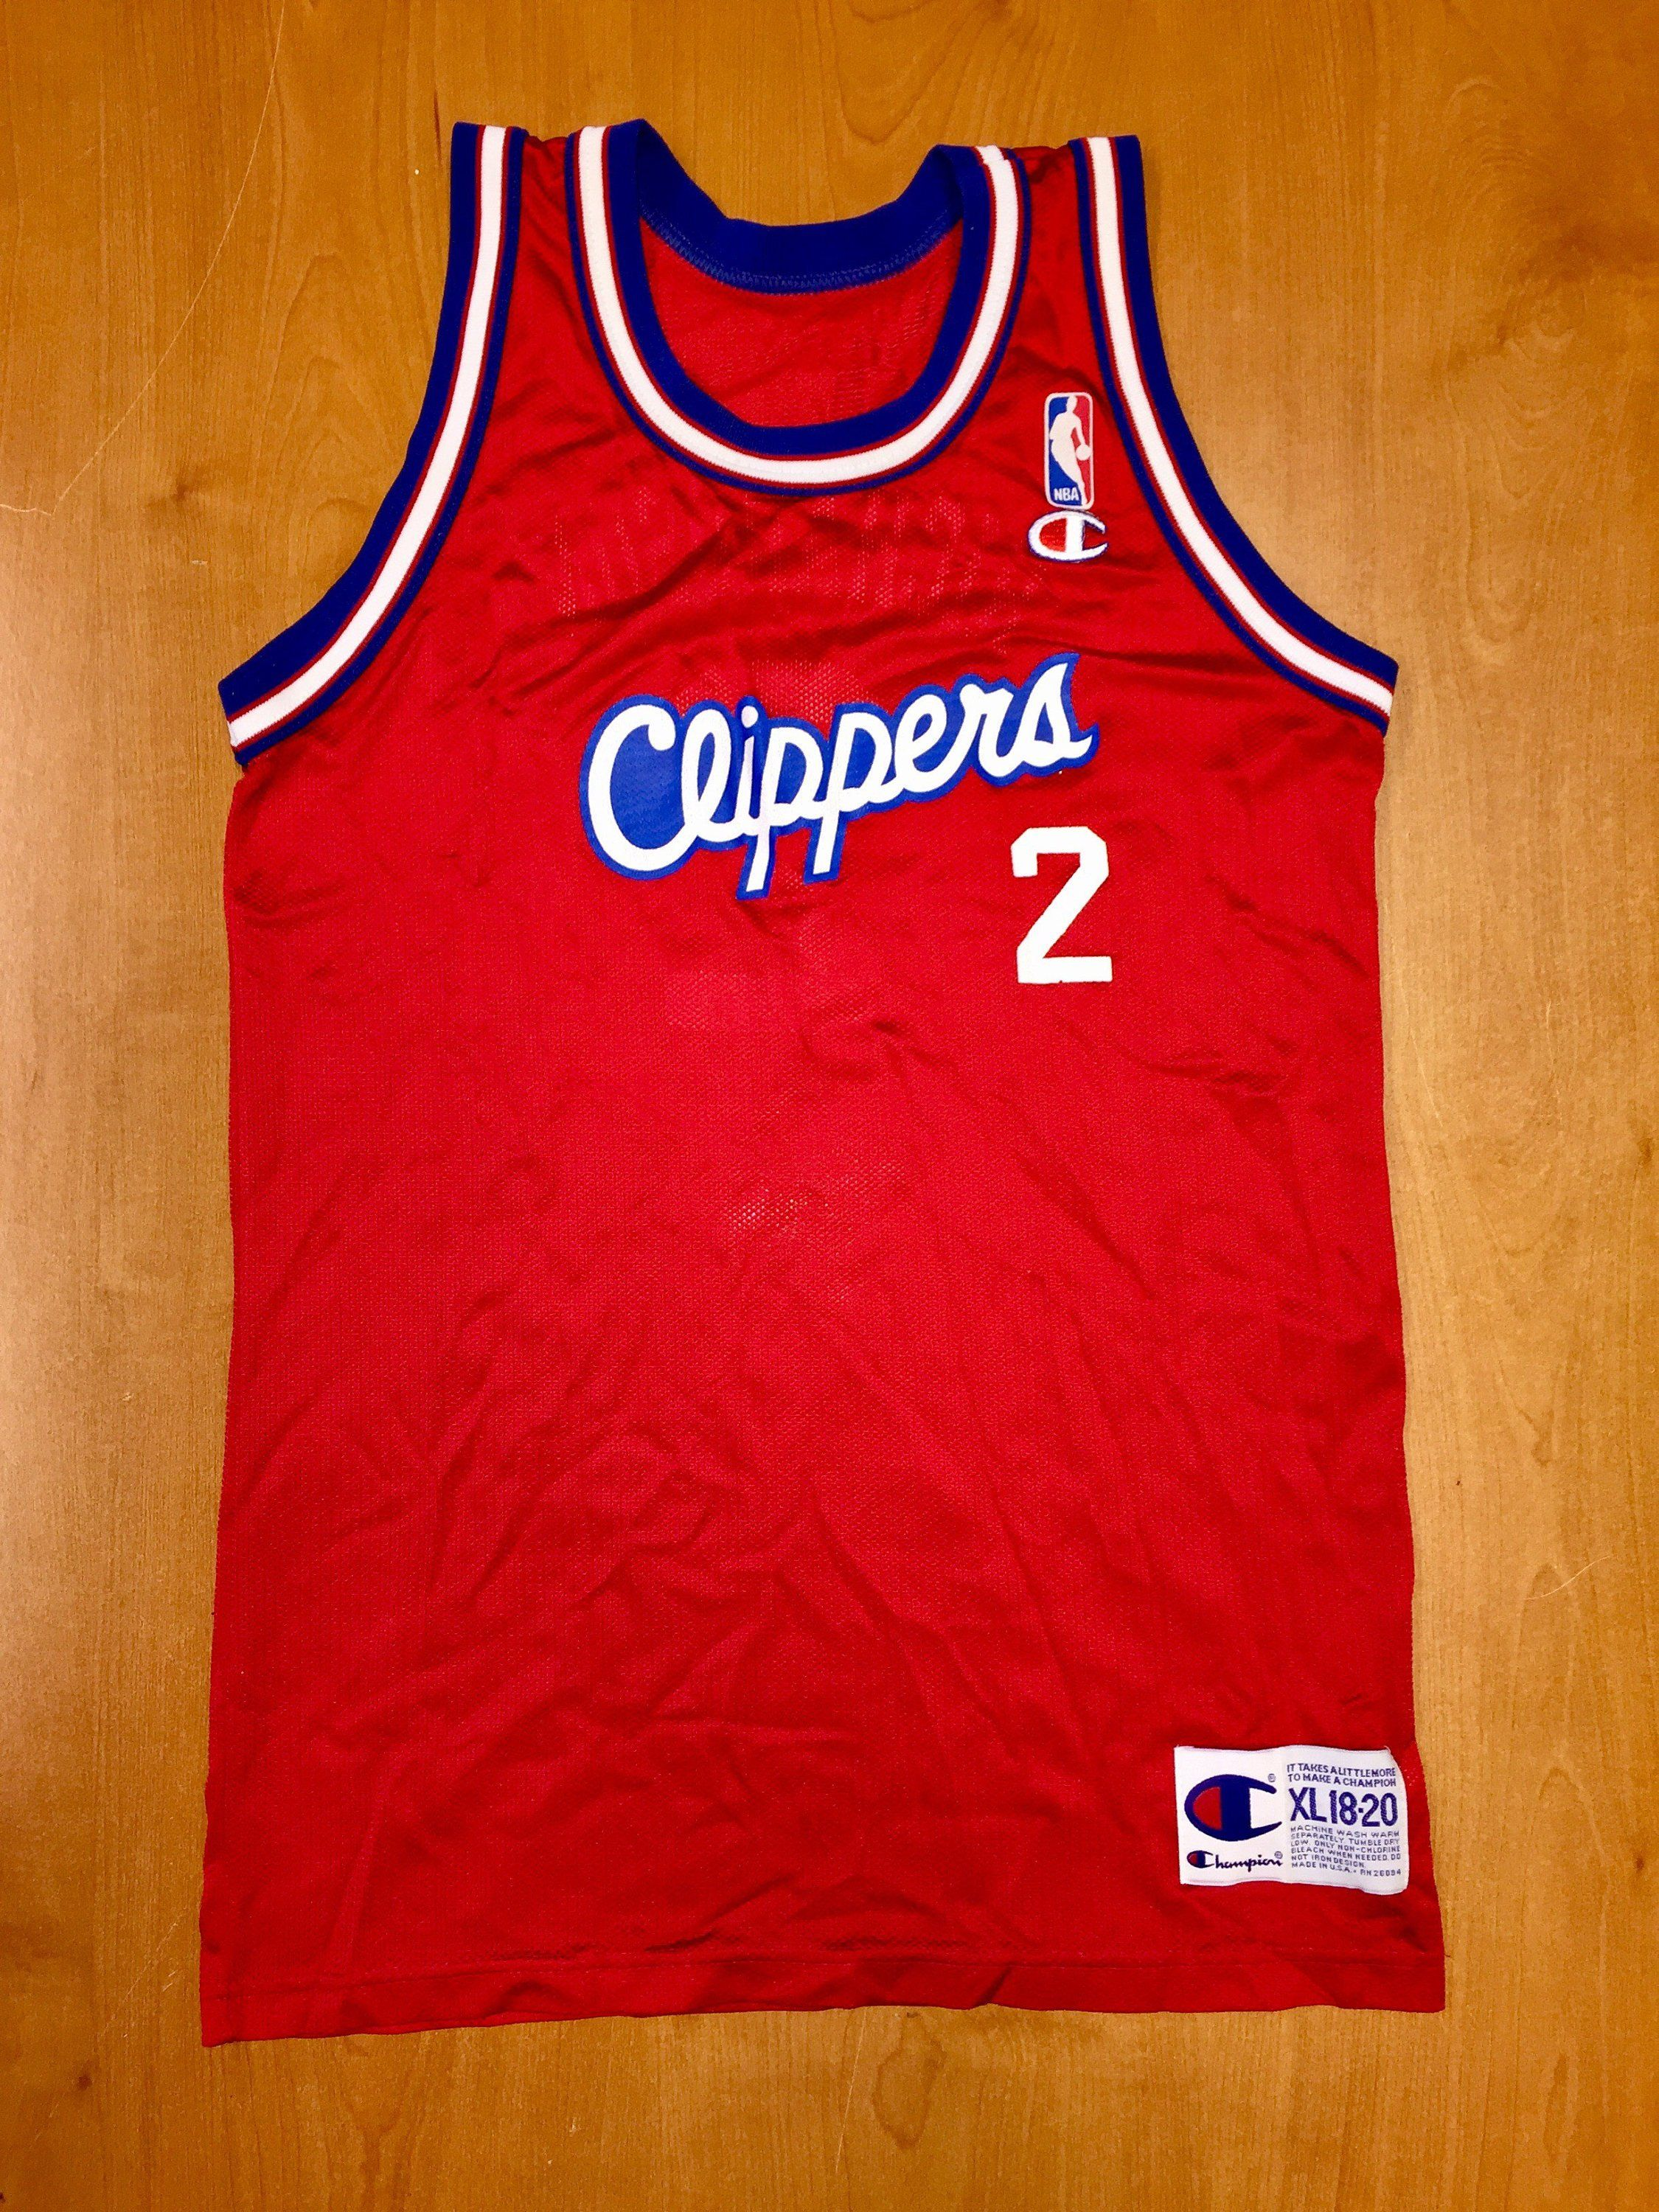 03f2f755b Vintage 1994 Pooh Richardson Los Angeles LA Clippers Champion Jersey Size  Youth XL dominique wilkins michael olowakandi quentin shirt hat by ...